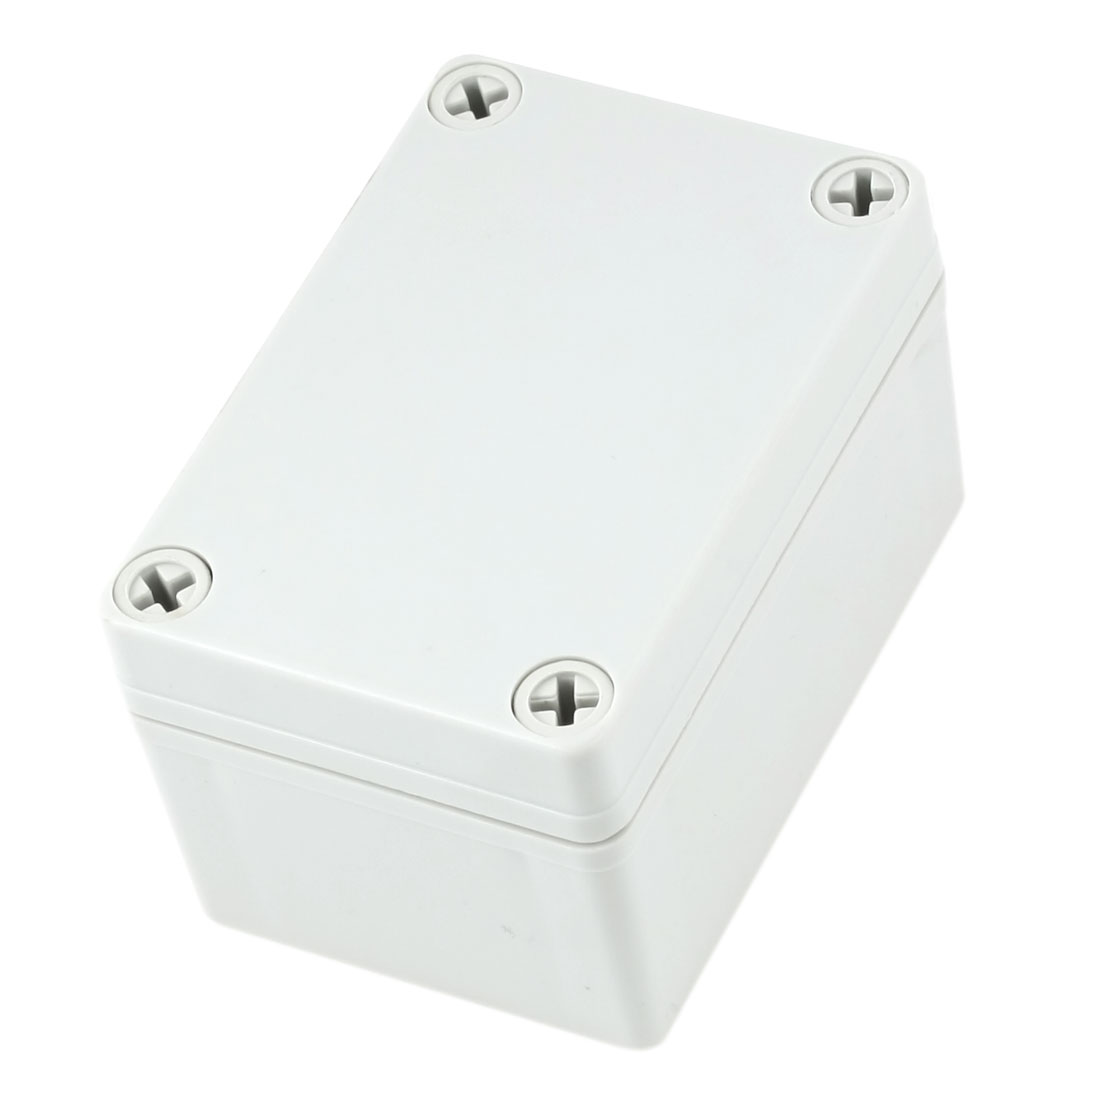 95mm x 65mm x 55mm Waterproof Rectangle Plastic Sealed Junction Enclose Box Power Protection Case